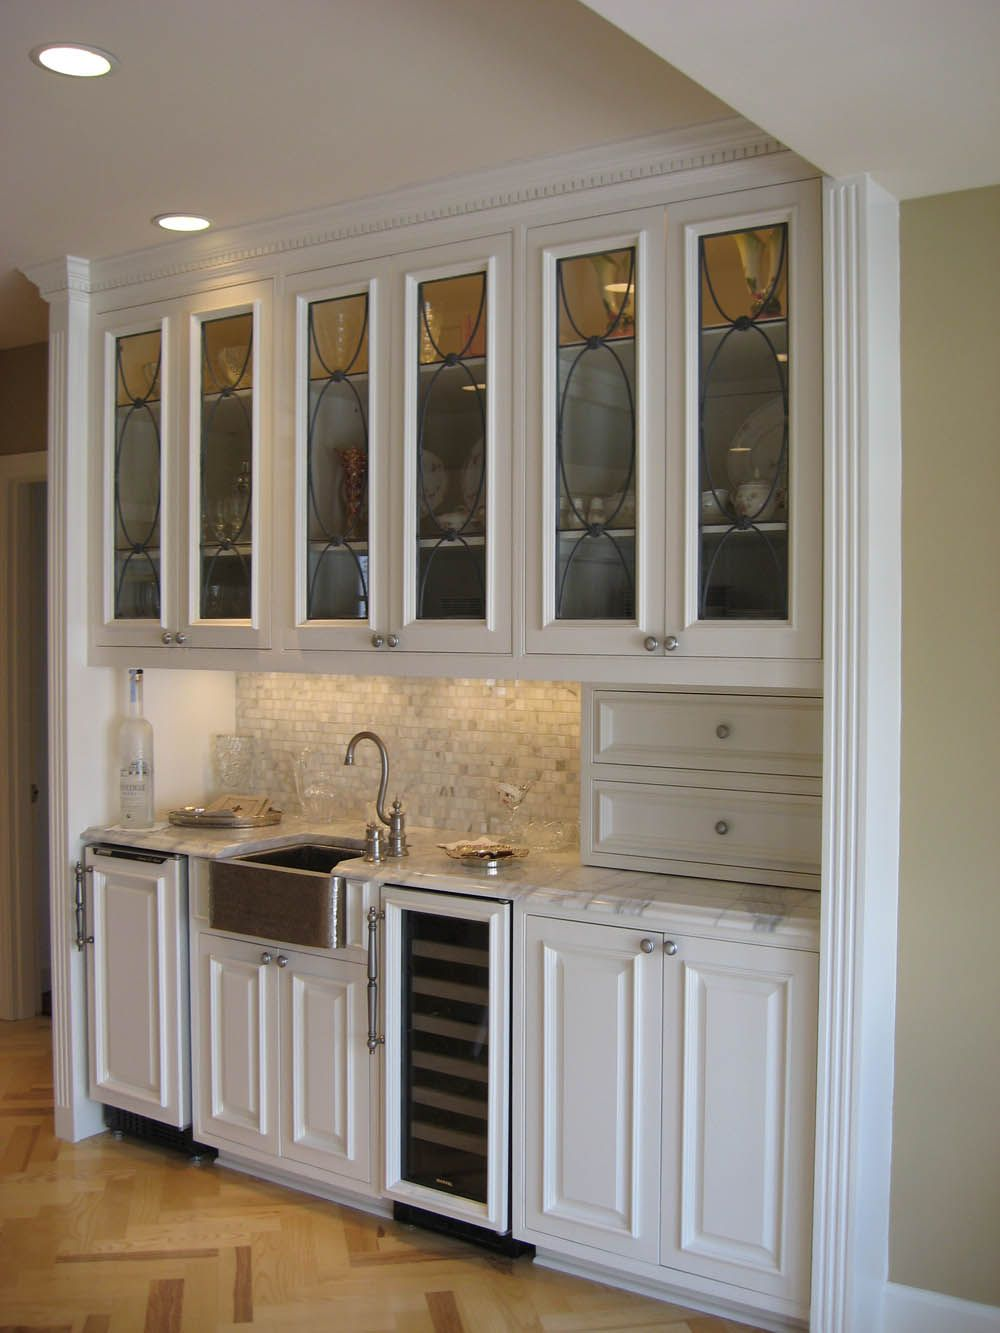 Custom Wet Bar I Love The Baby Size Farmhouse Sink And The Glass Detailing On The Cabinets This Small Farmhouse Sink Basement Bar Designs Residential Remodel